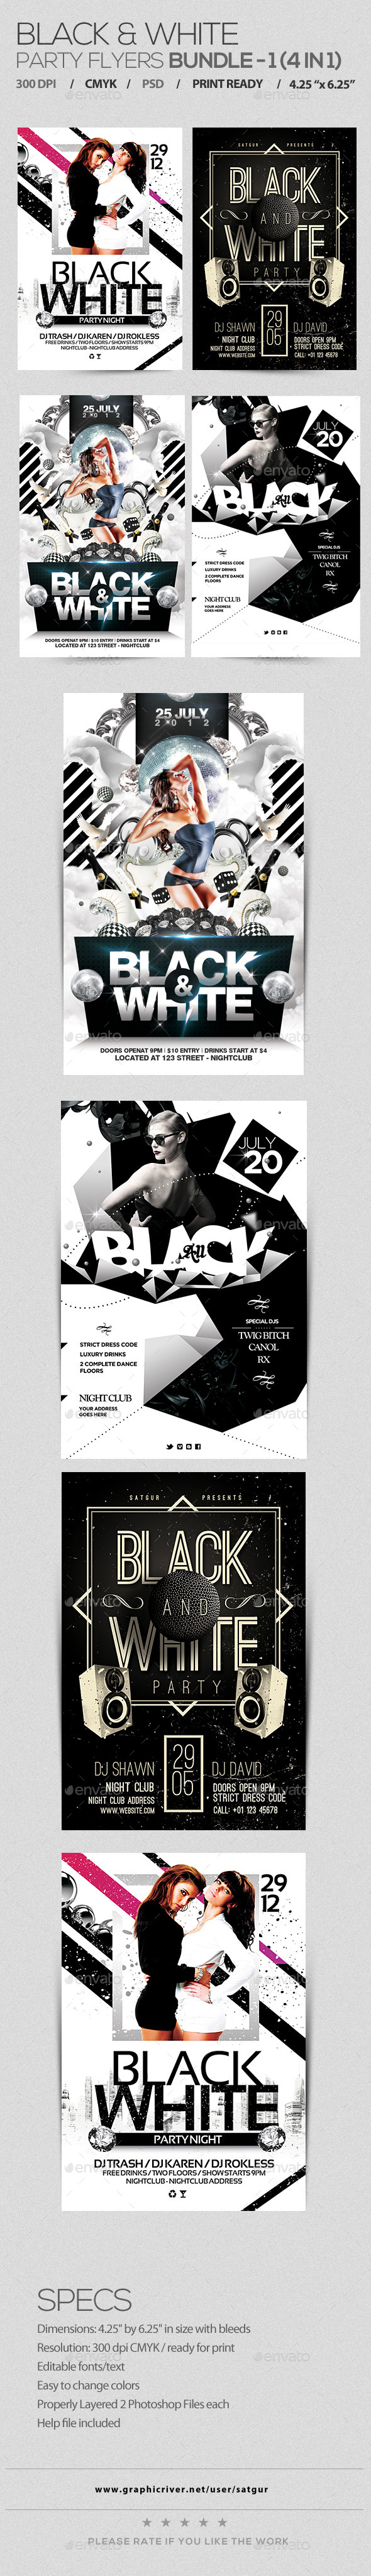 Black and White Party Flyers Bundle - Clubs & Parties Events